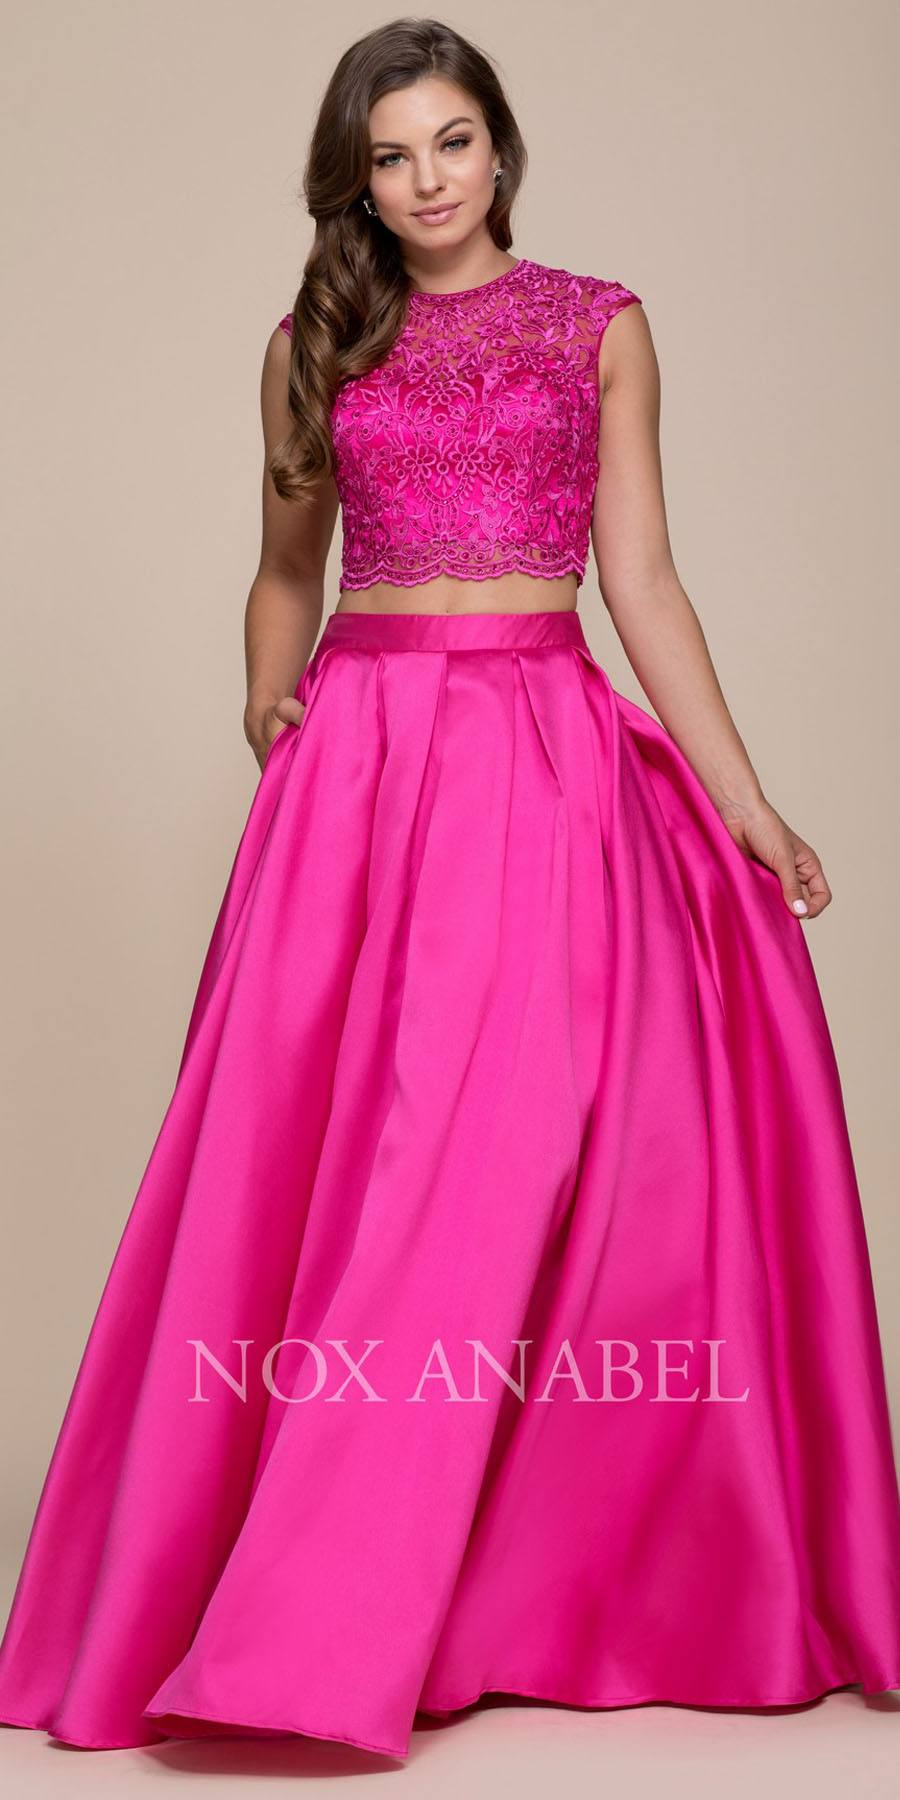 3a3fe112db191 Fuchsia Two-Piece Prom Gown Lace Up Back with Pockets. Tap to expand